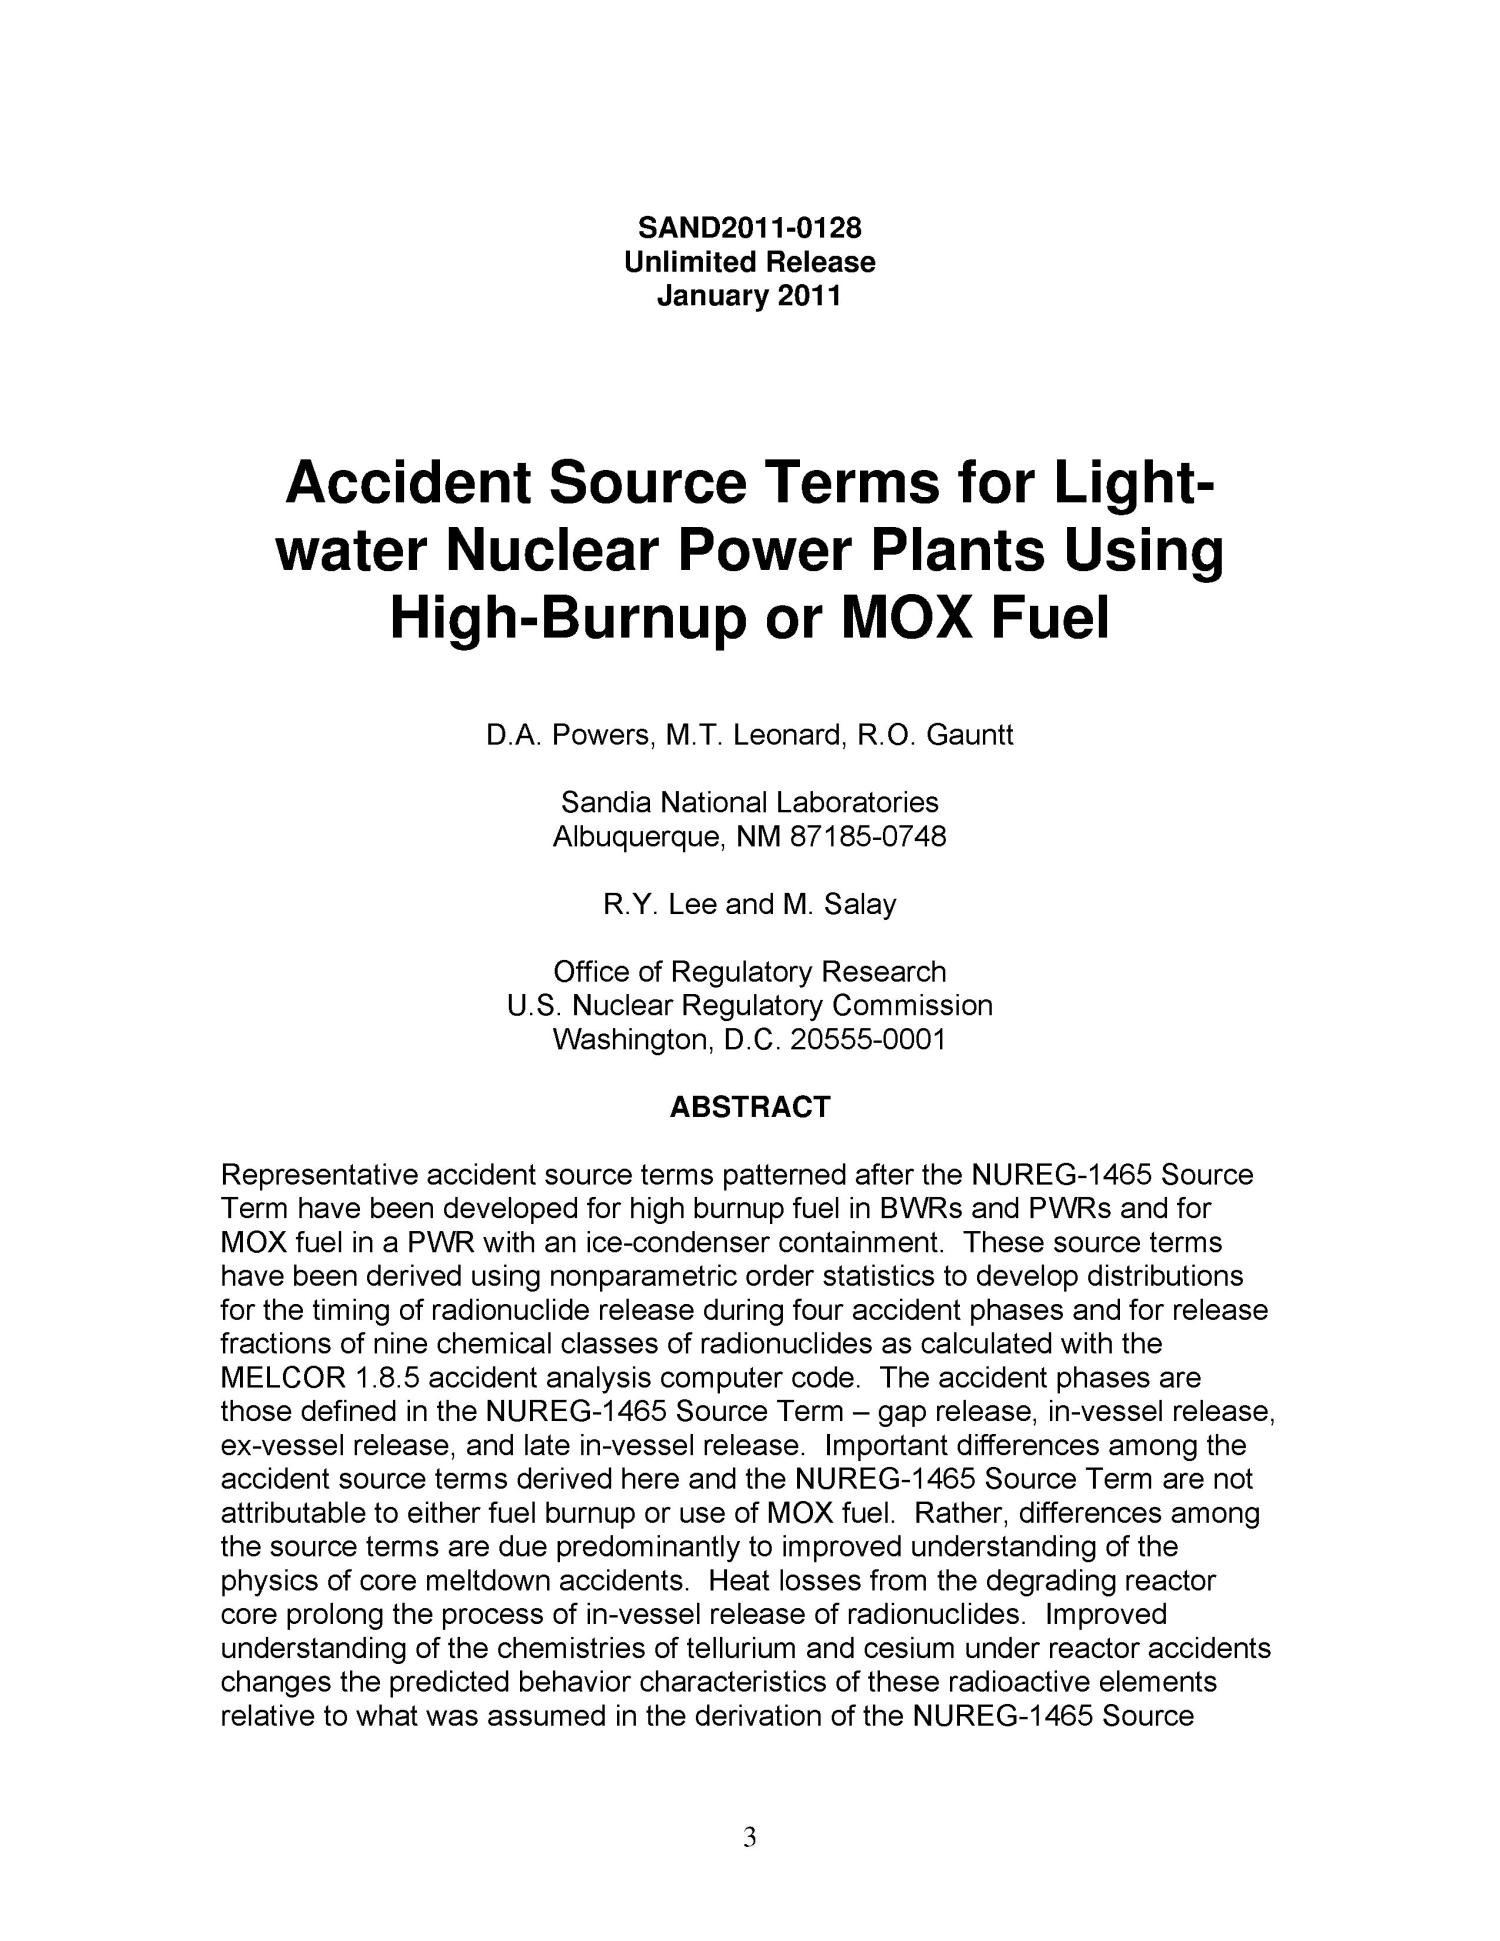 Accident source terms for light-water nuclear power plants using high-burnup or MOX fuel.                                                                                                      [Sequence #]: 3 of 60